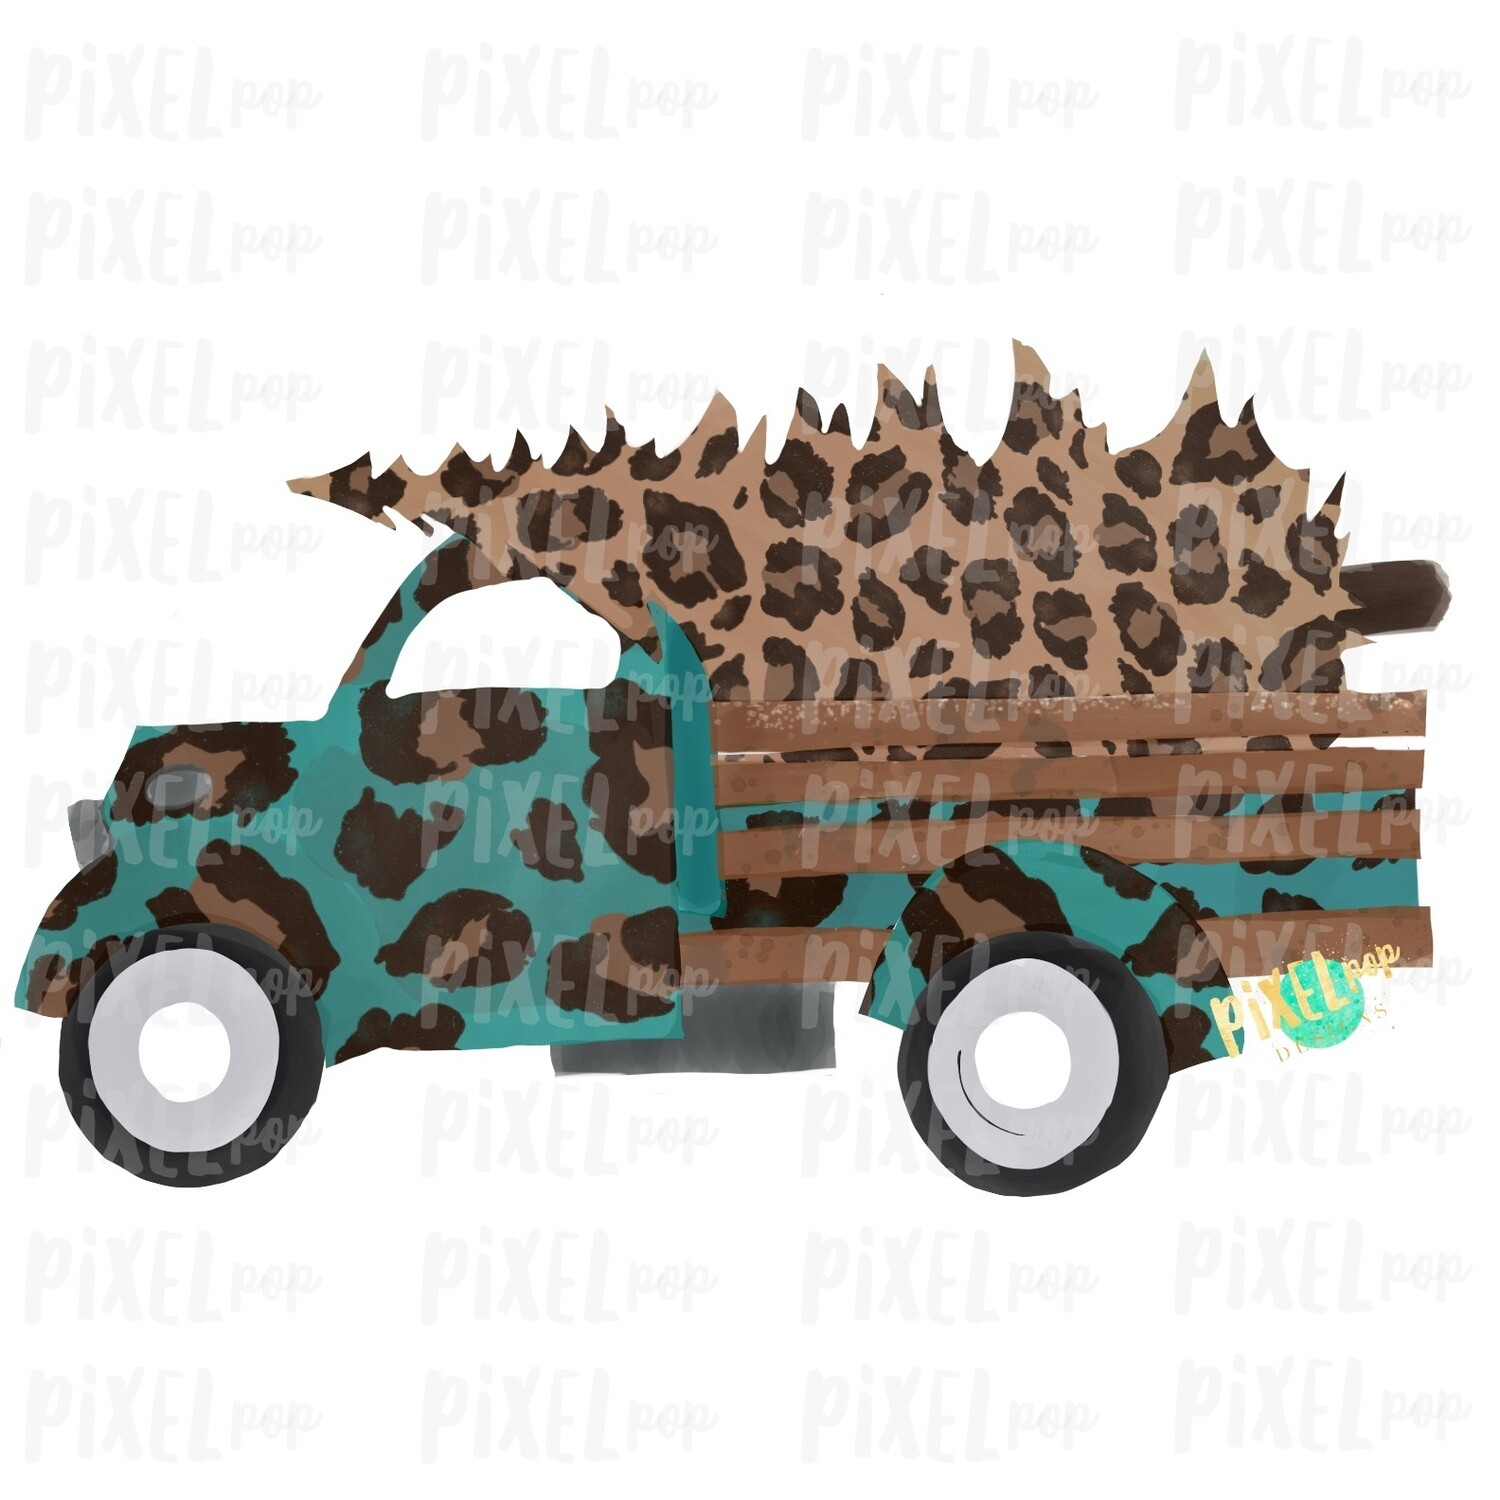 Christmas Truck Leopard Sublimation PNG | Hand Drawn Design | Sublimation PNG | Digital Download | Printable Artwork | Art